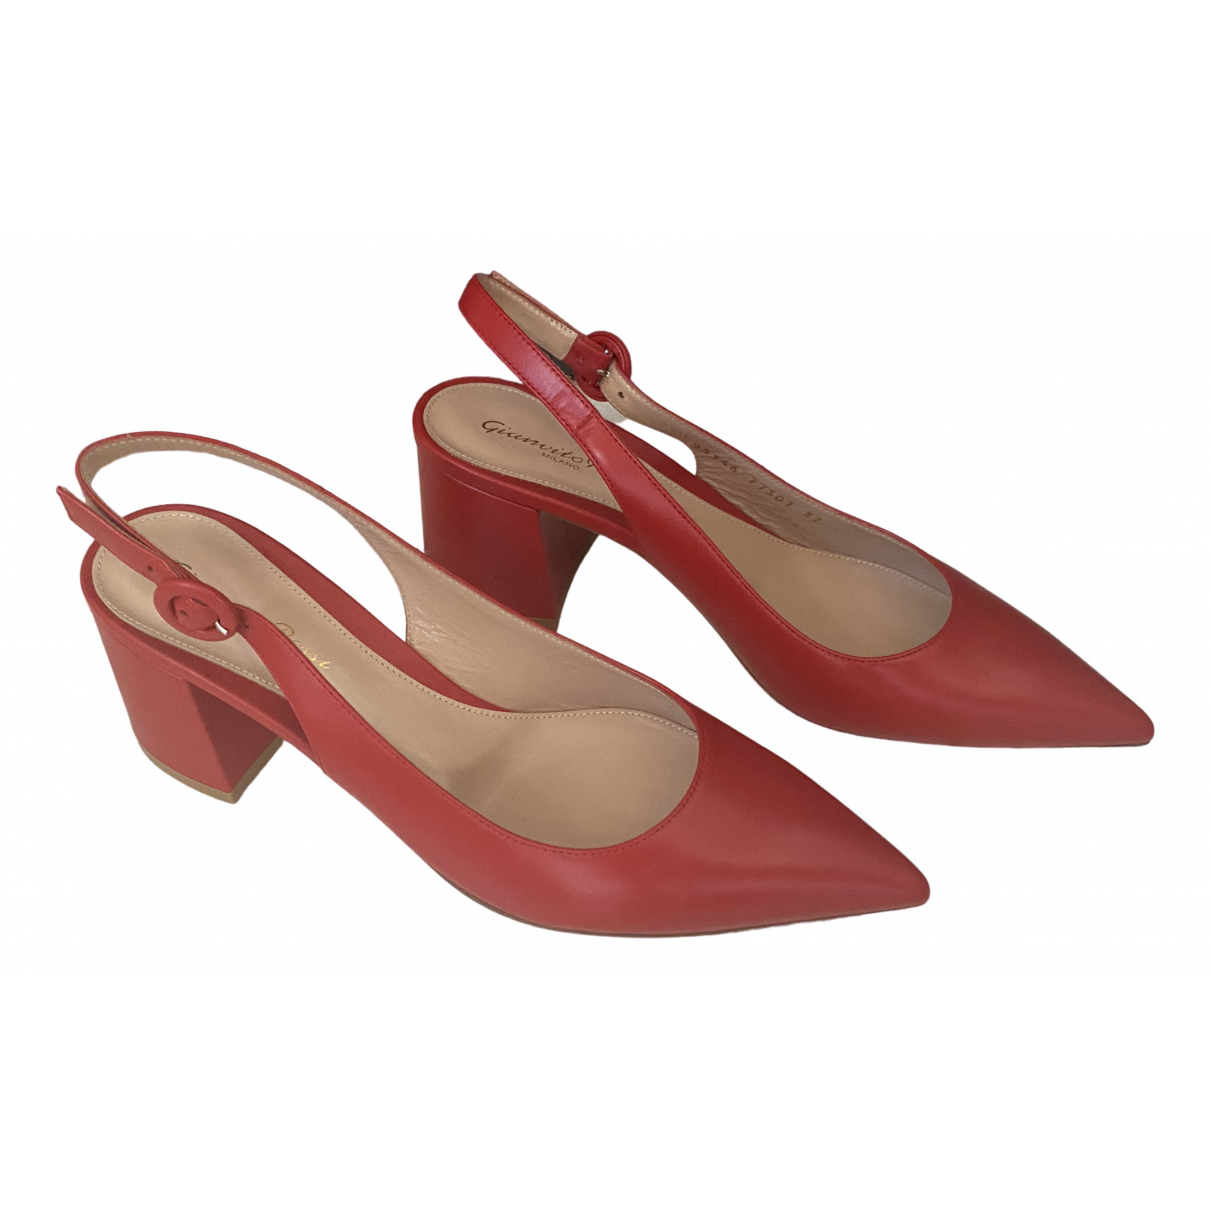 Gianvito Rossi \N Red Leather Heels for Women 37 EU